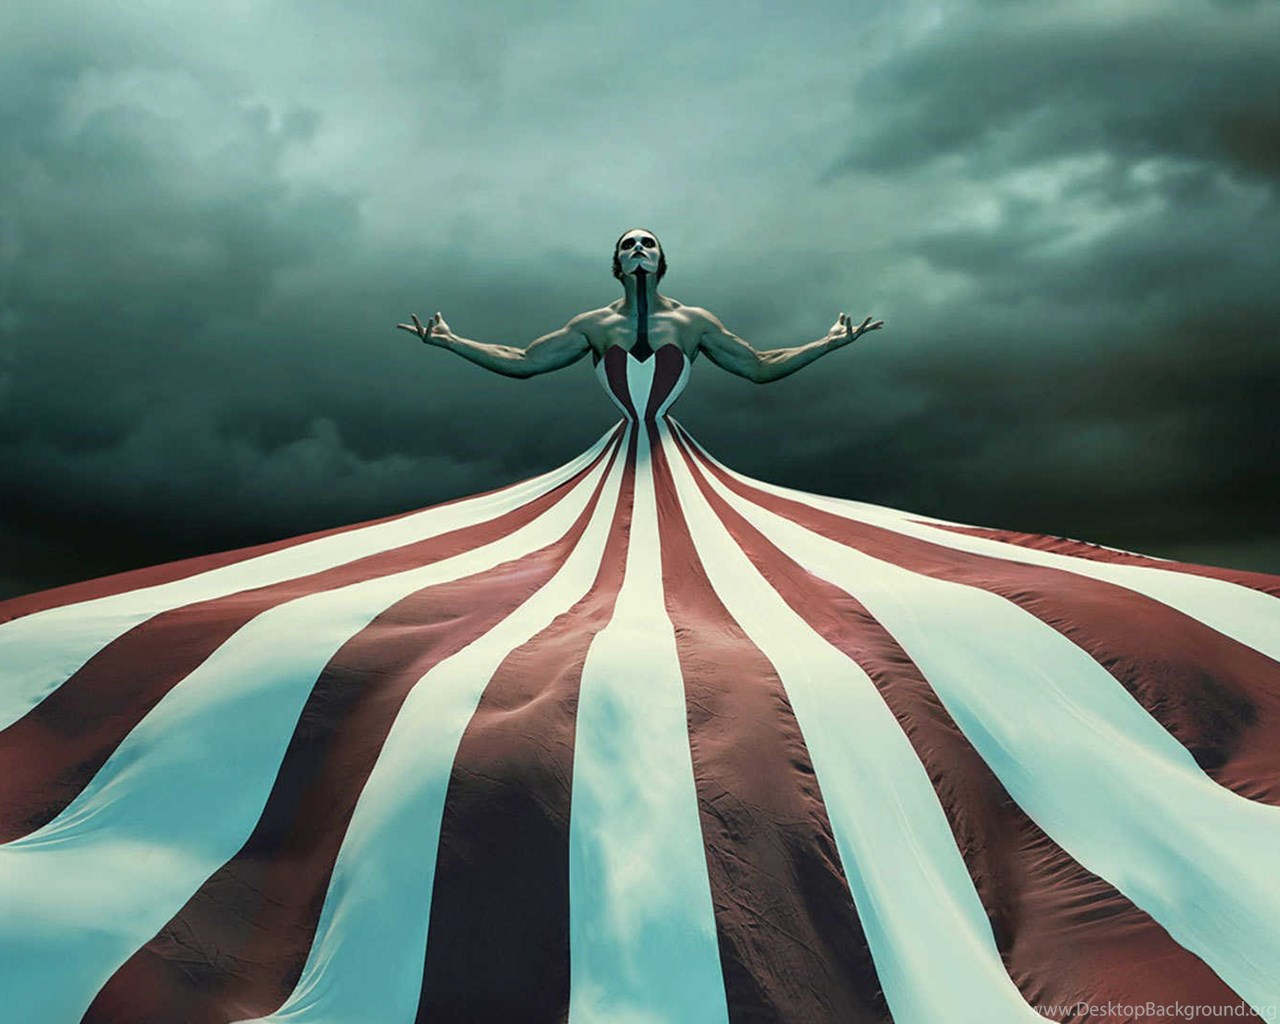 American Horror Story Freak Show Wallpapers Hd Hdwallwide Com